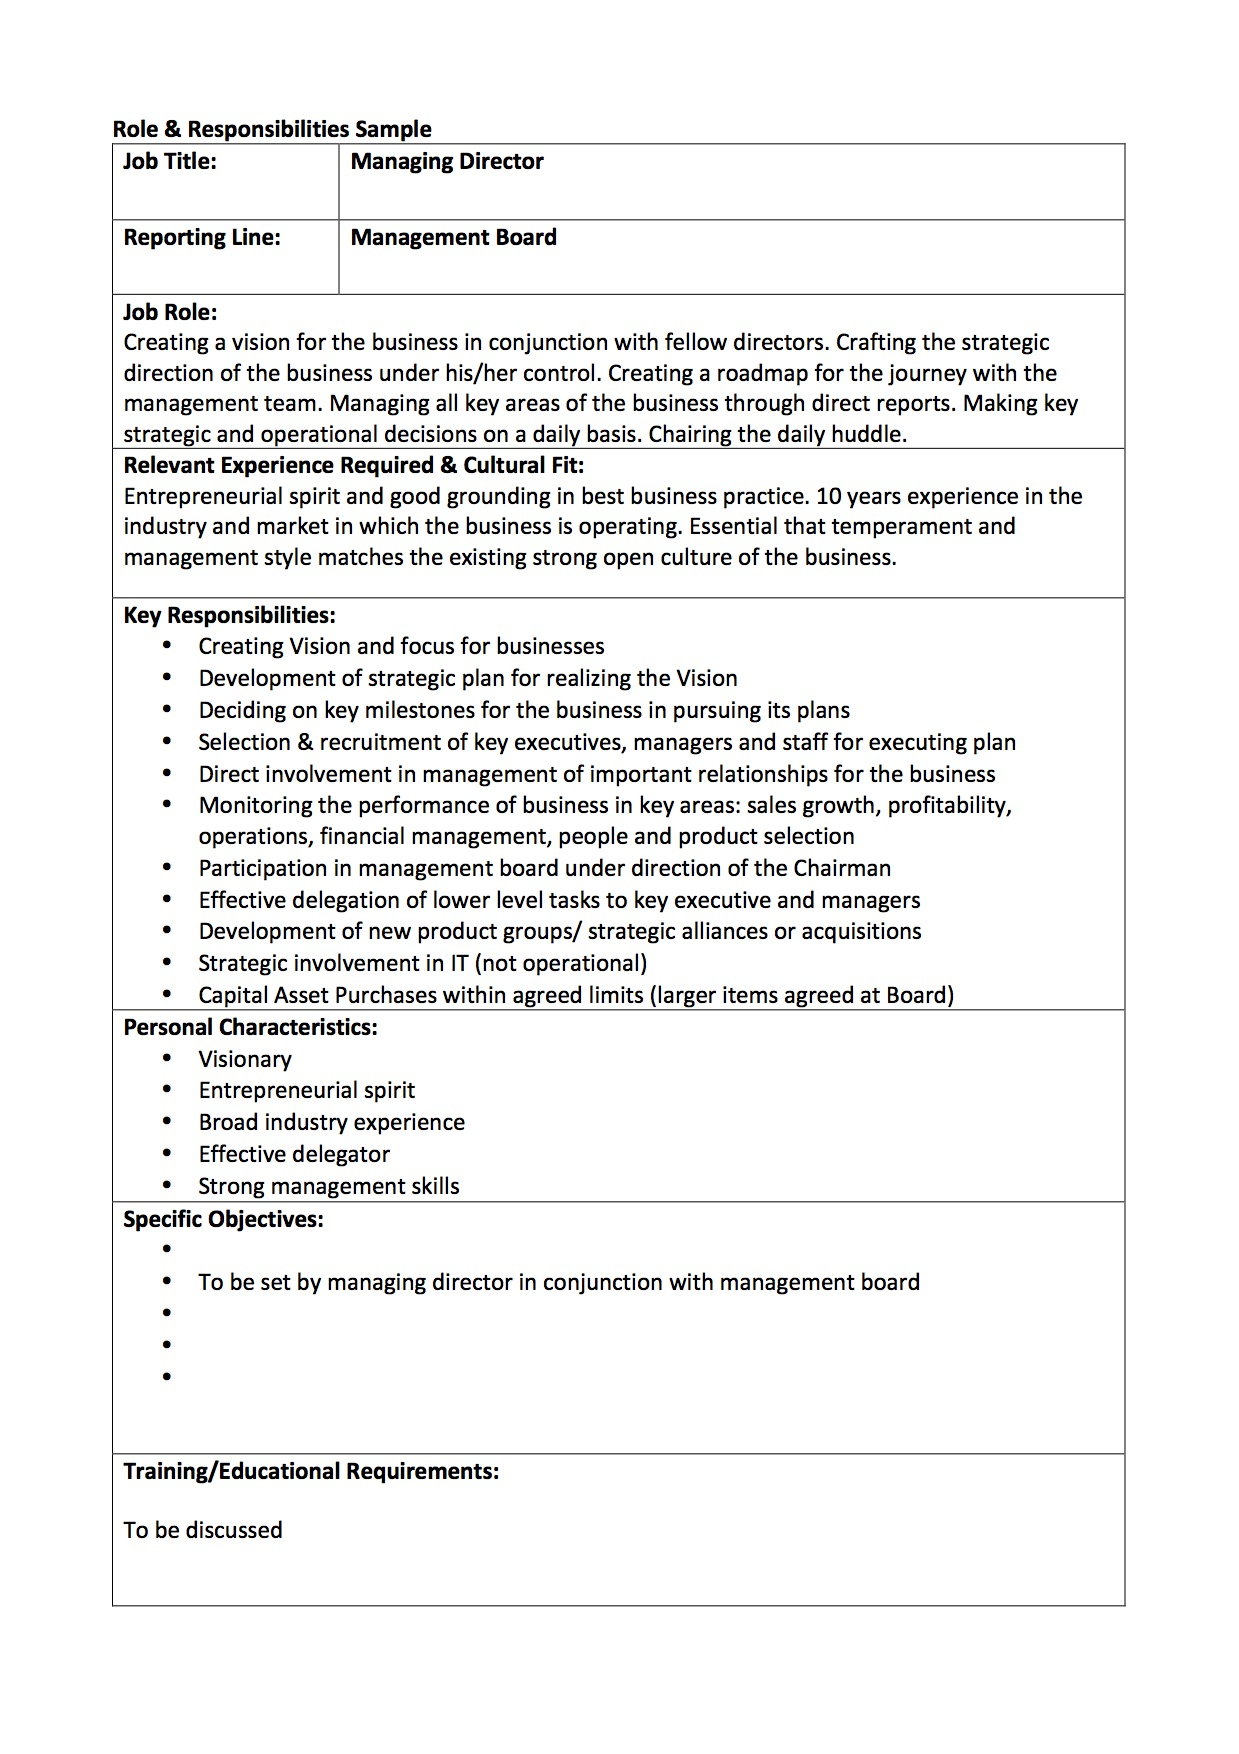 Roles and Responsibilities Sample